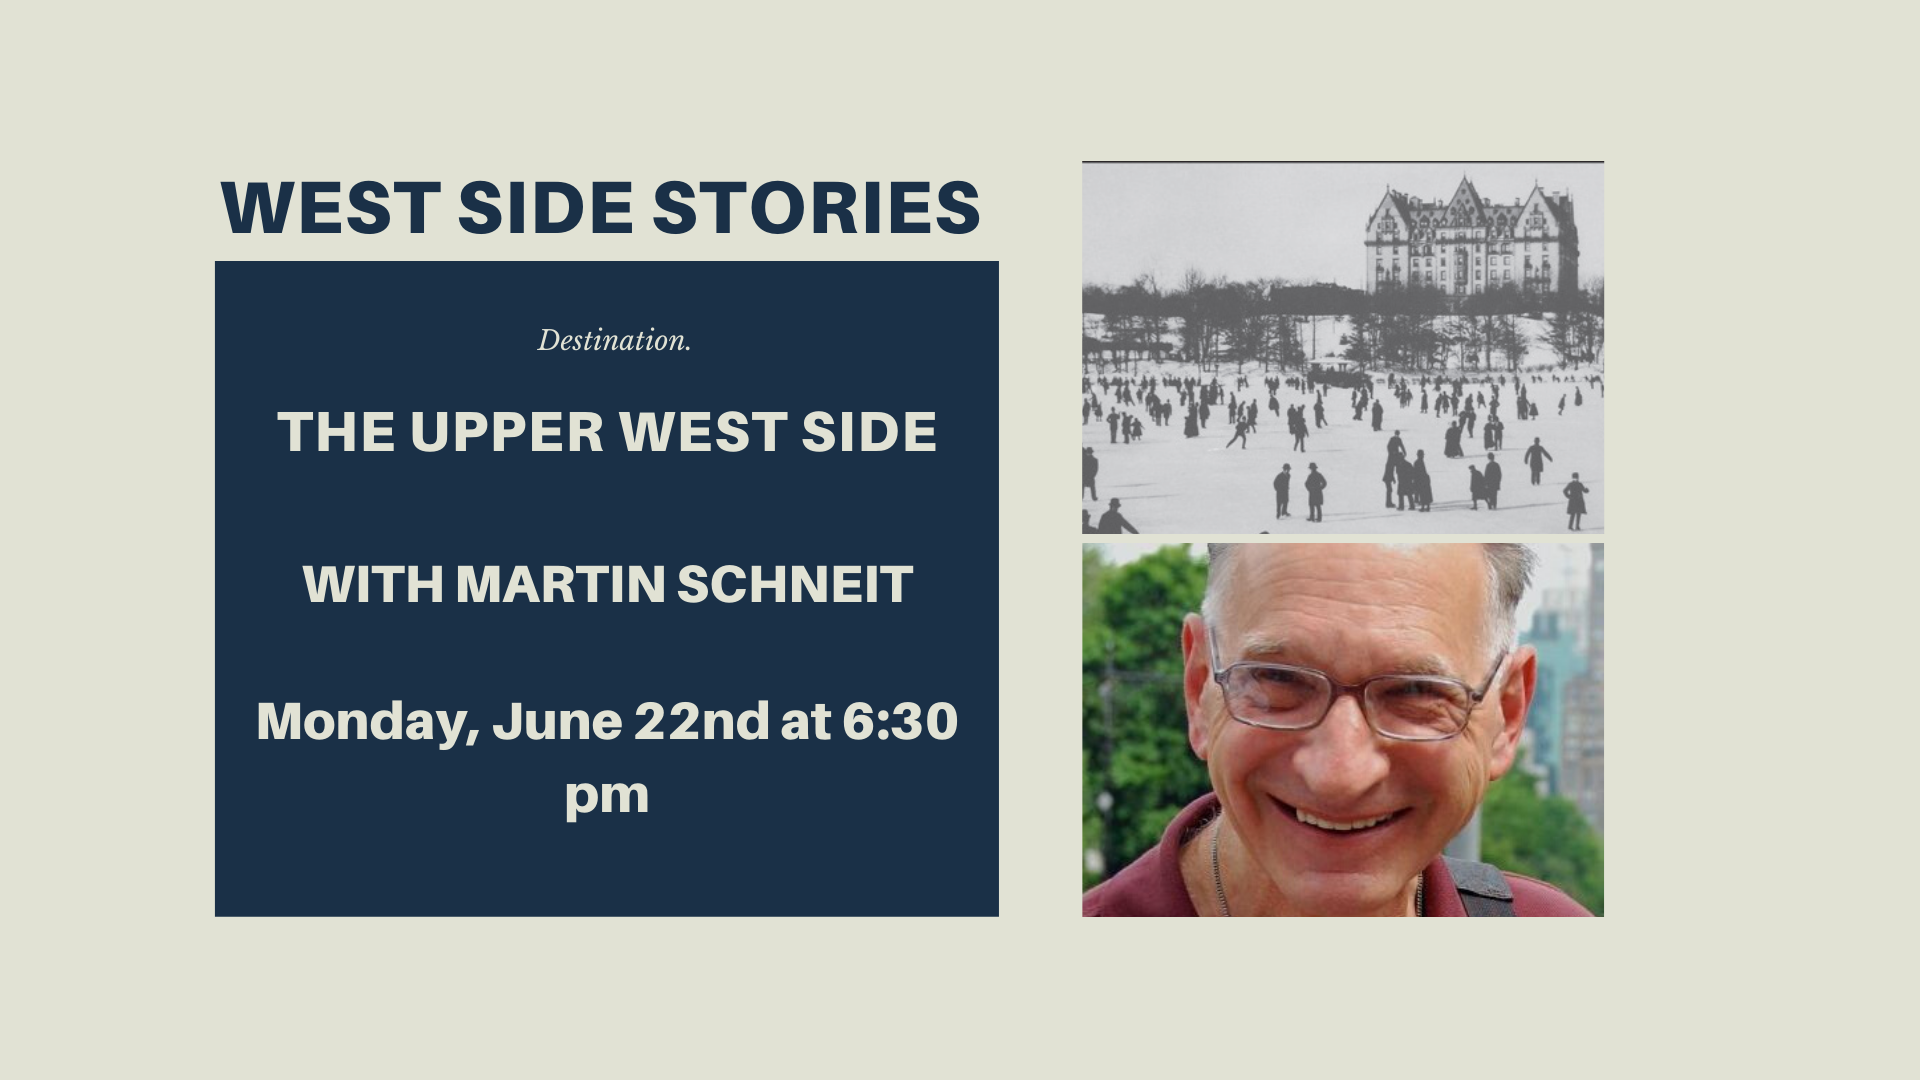 West Side Stories (Upper West Side) with Marty Schneit